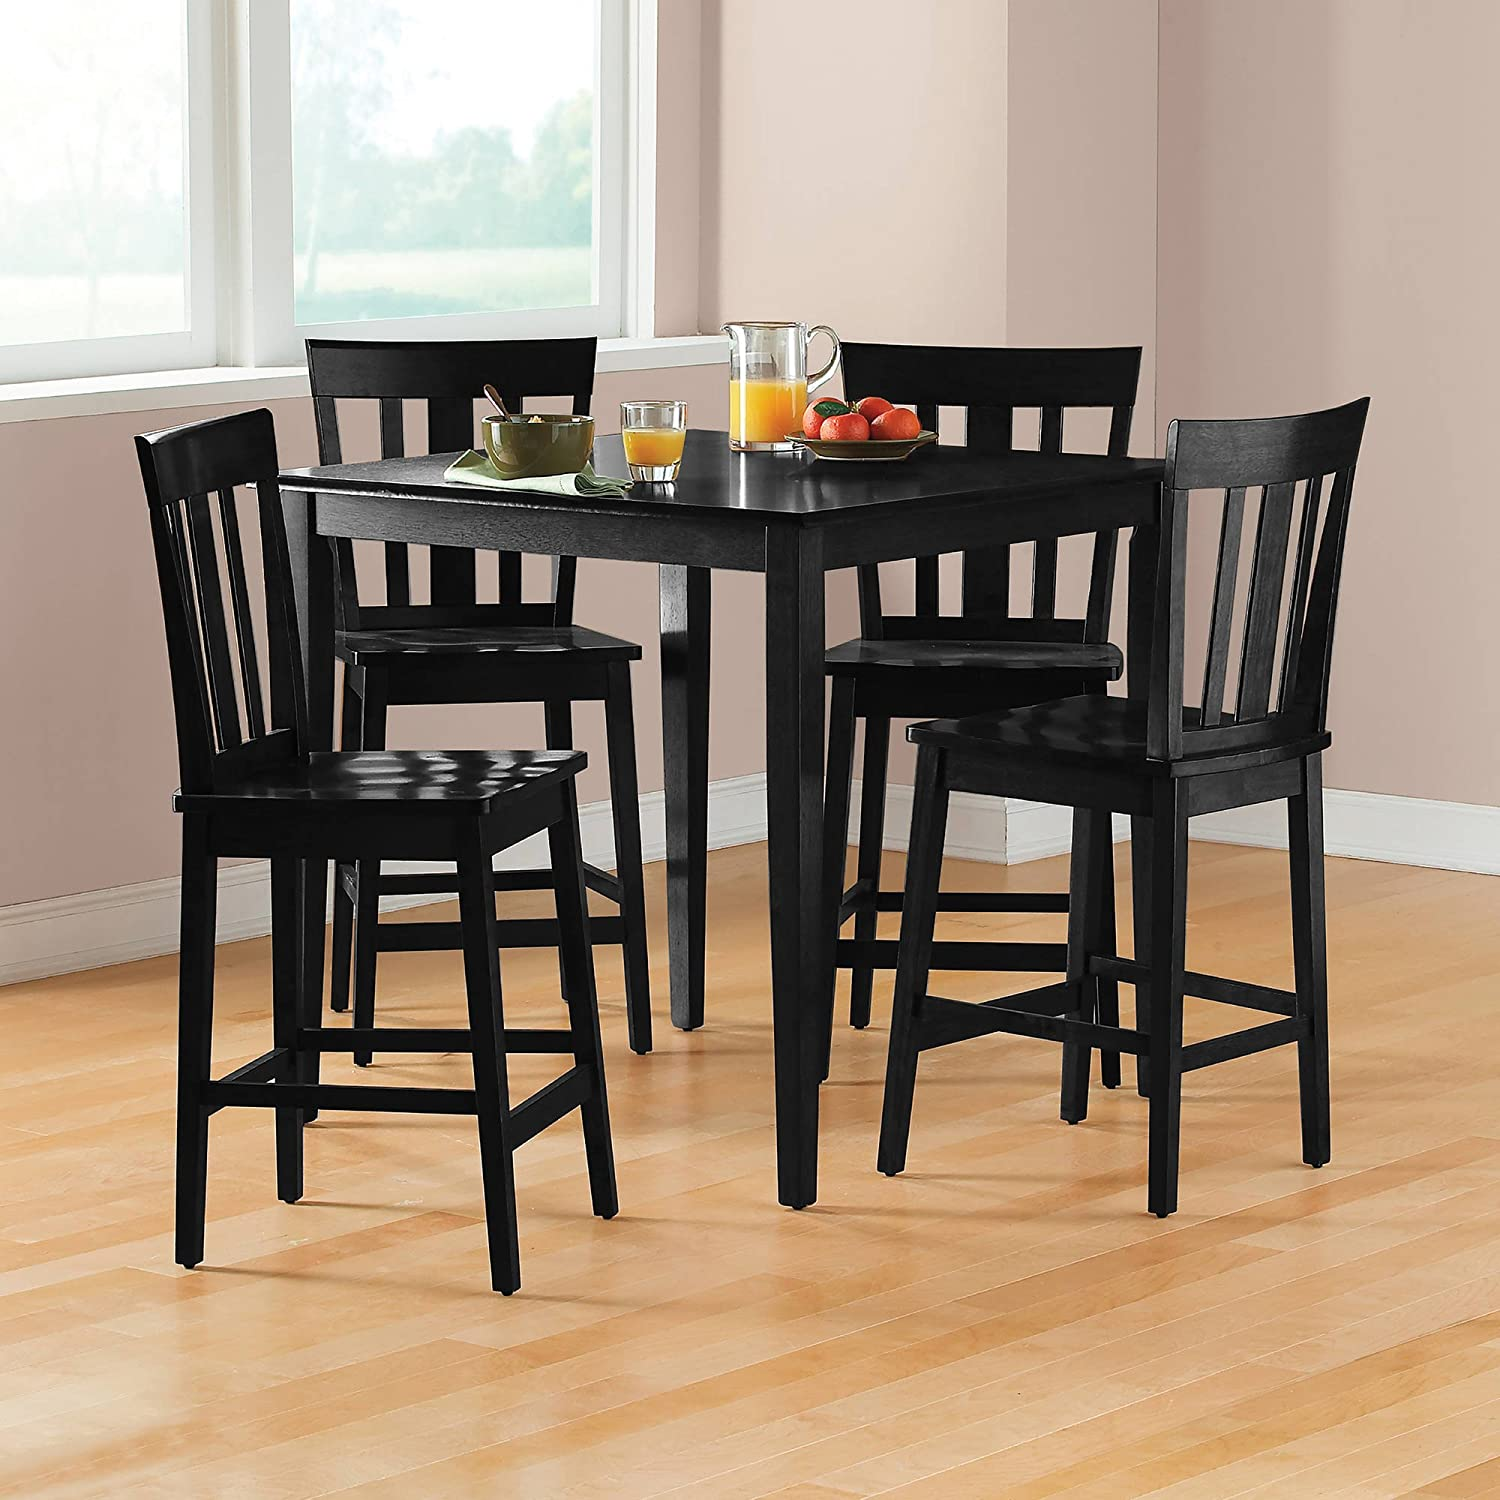 Mainstay 9 Piece Counter Height Dining Set, Warm in Black